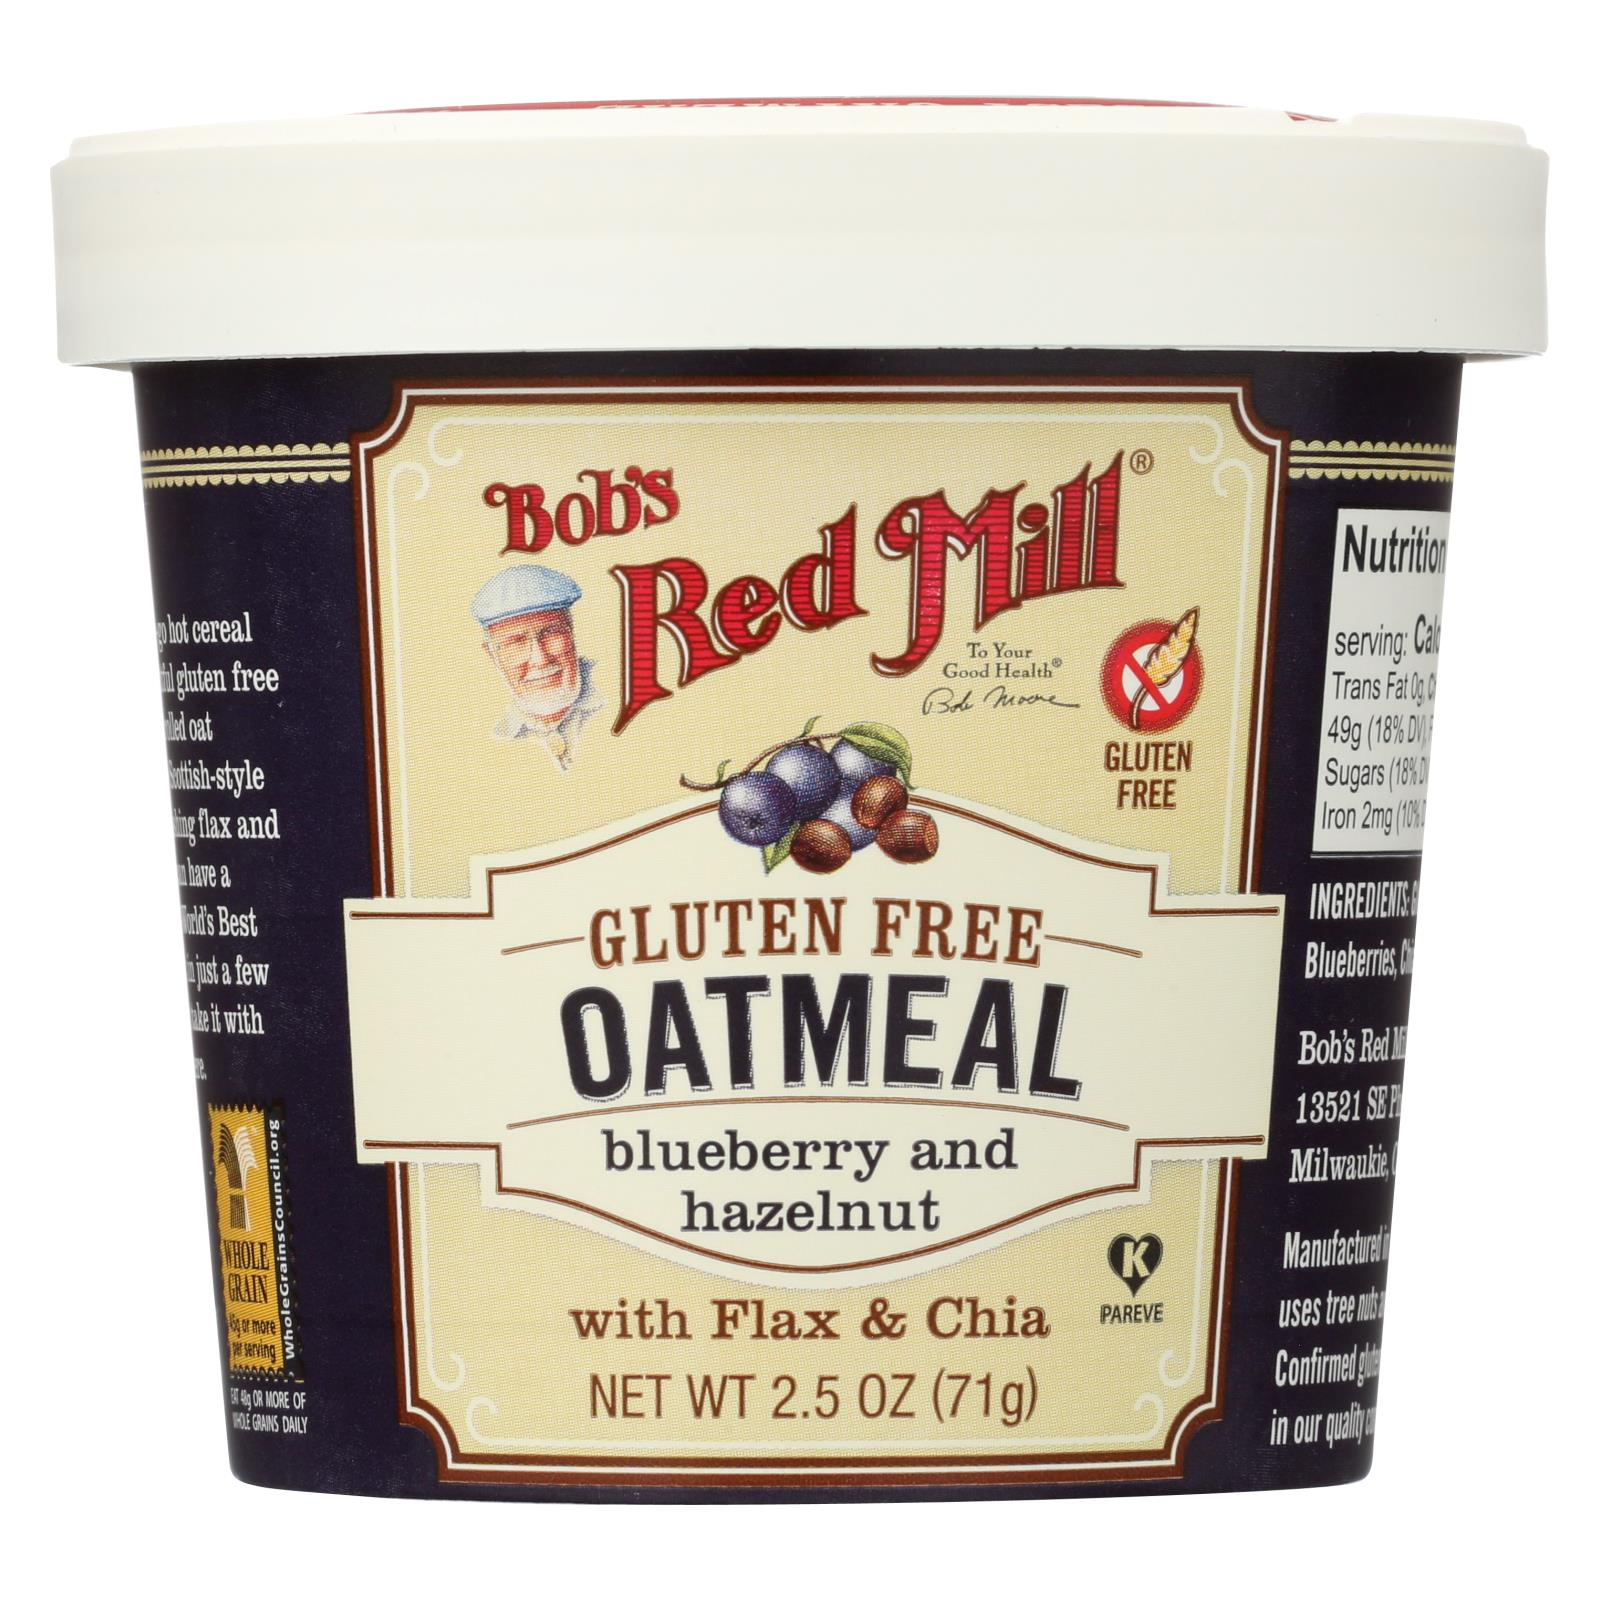 Bob's Red Mill Gluten Free Oatmeal Cup, Blueberry And Hazelnut - 2.5 Oz - Case Of 12 HG1770593